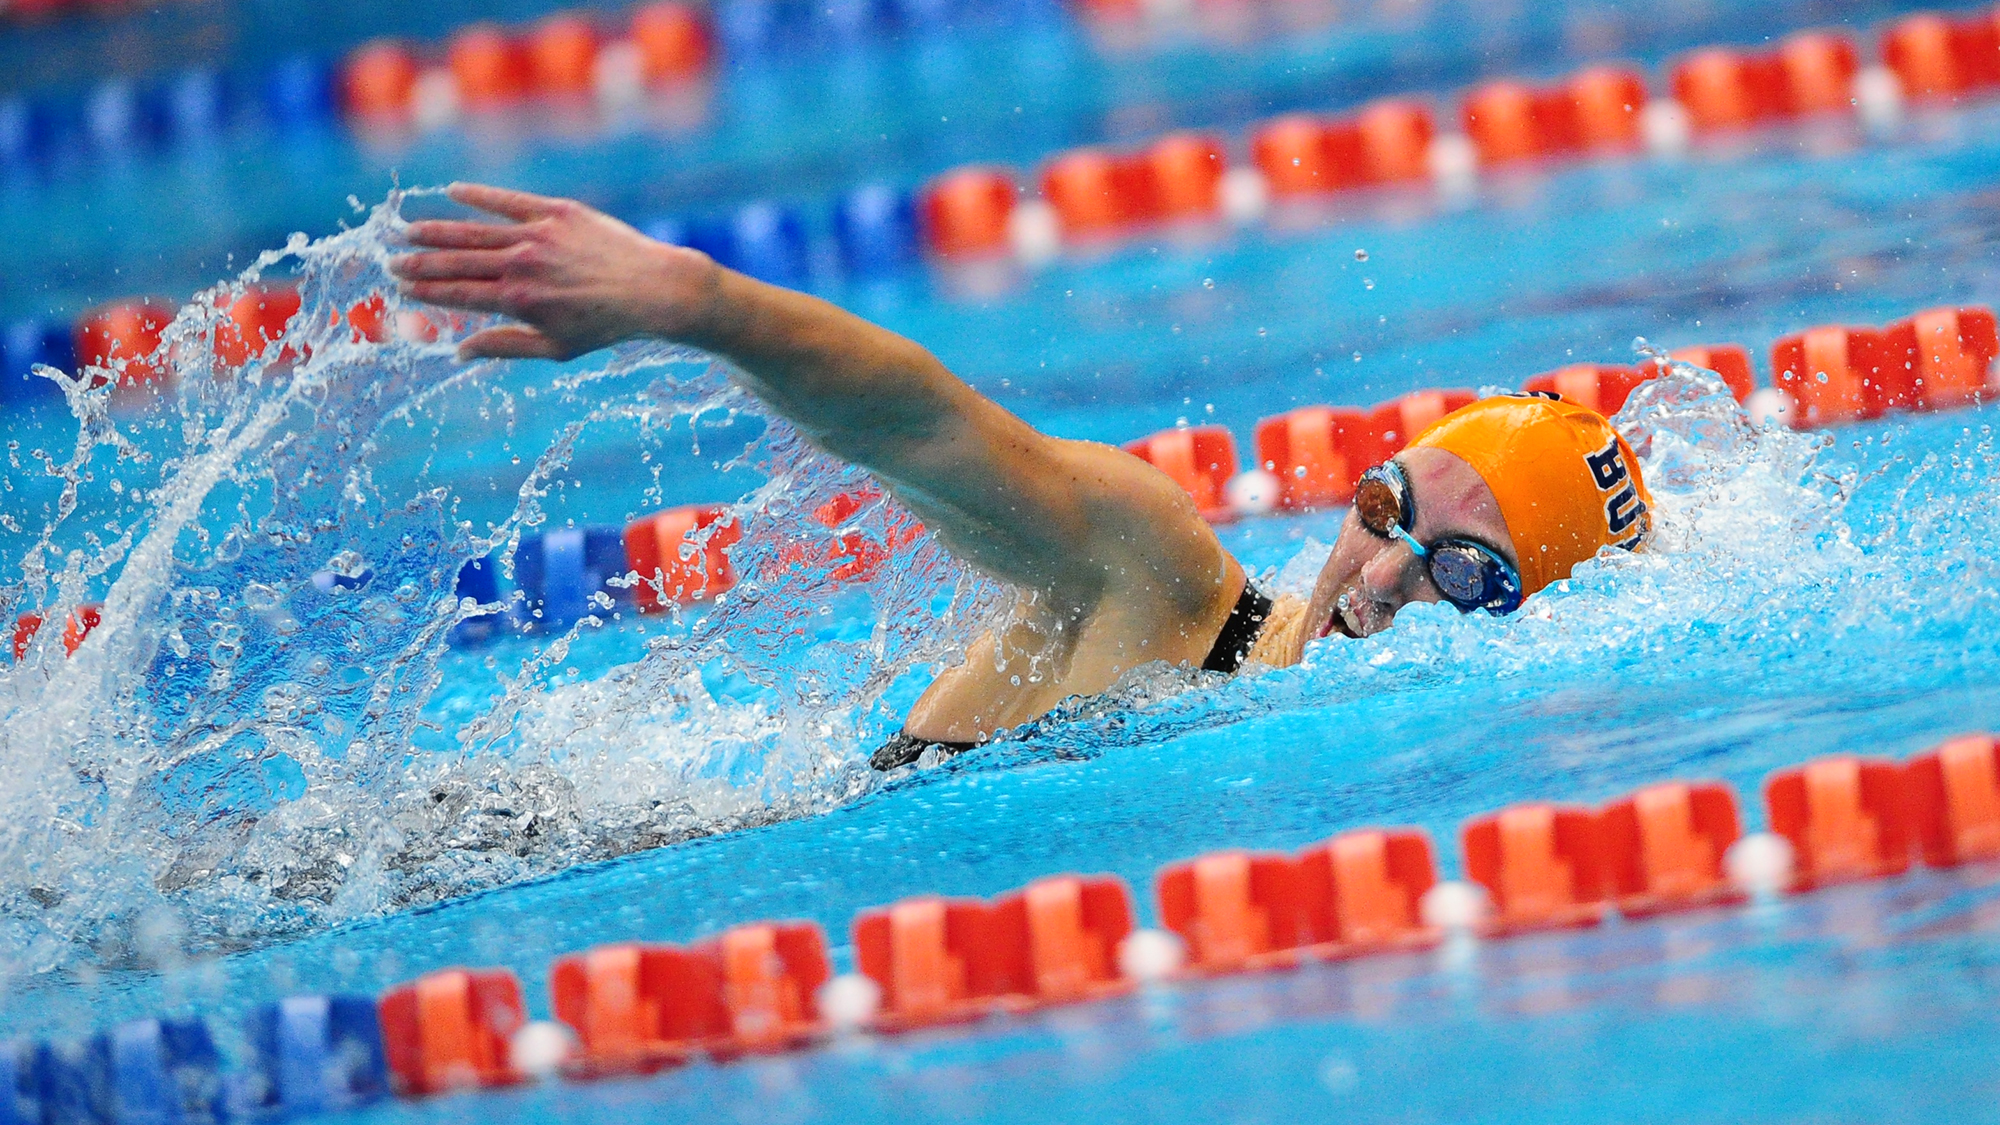 Kate Crilly '20 was part of the quartet of swimmers that beat the 800 free relay by .06 seconds (Photo courtesy of David Sinclair, Gettysburg College Athletics)